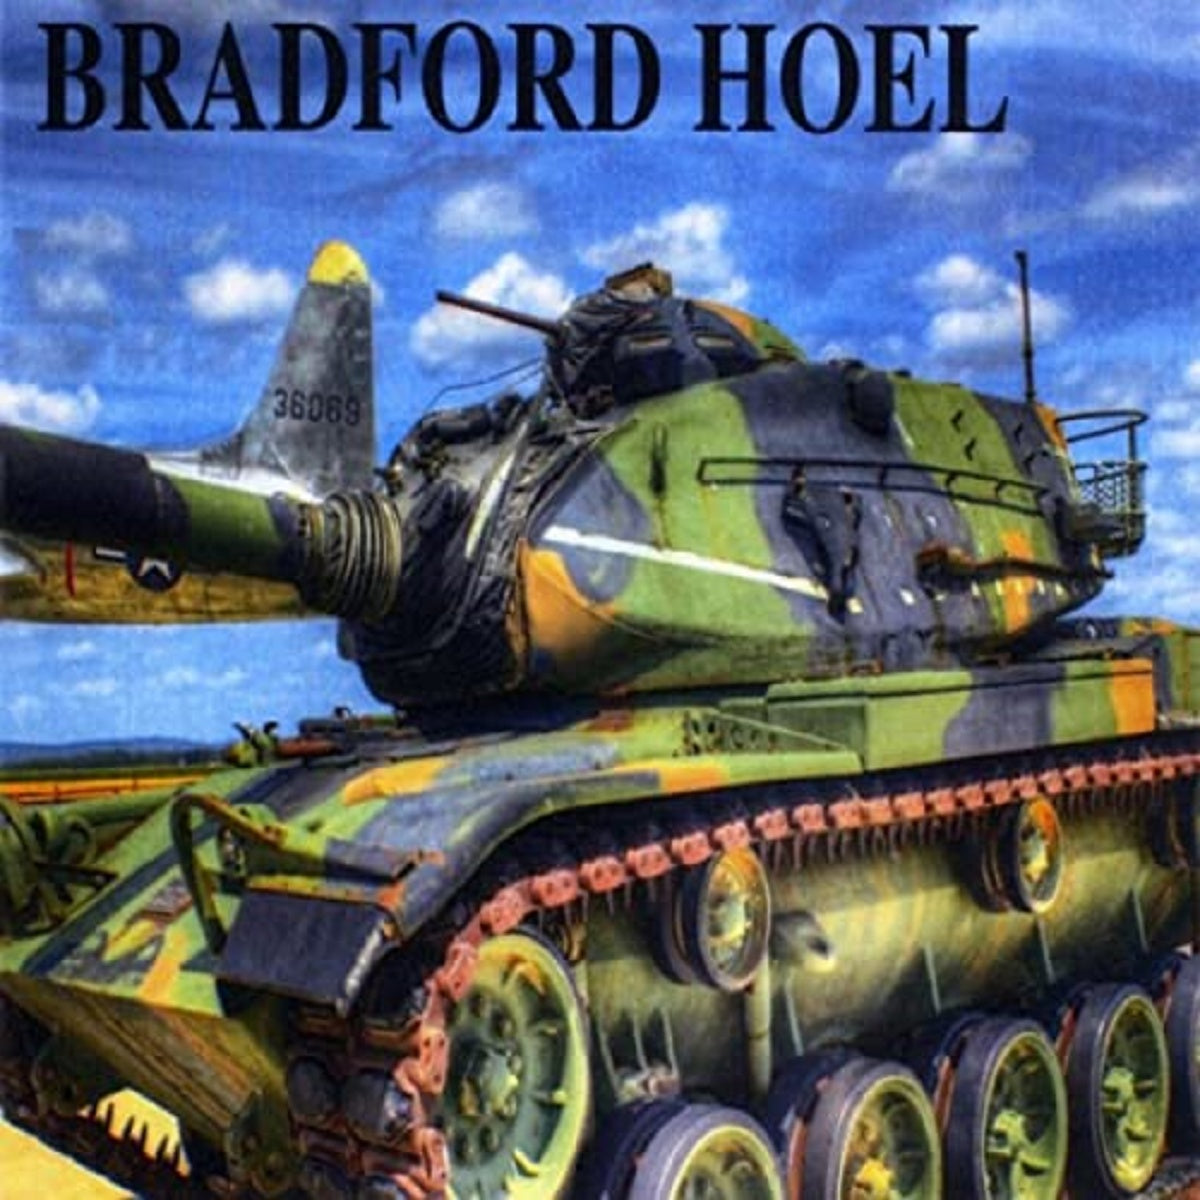 An Interview With Bradford Hoel